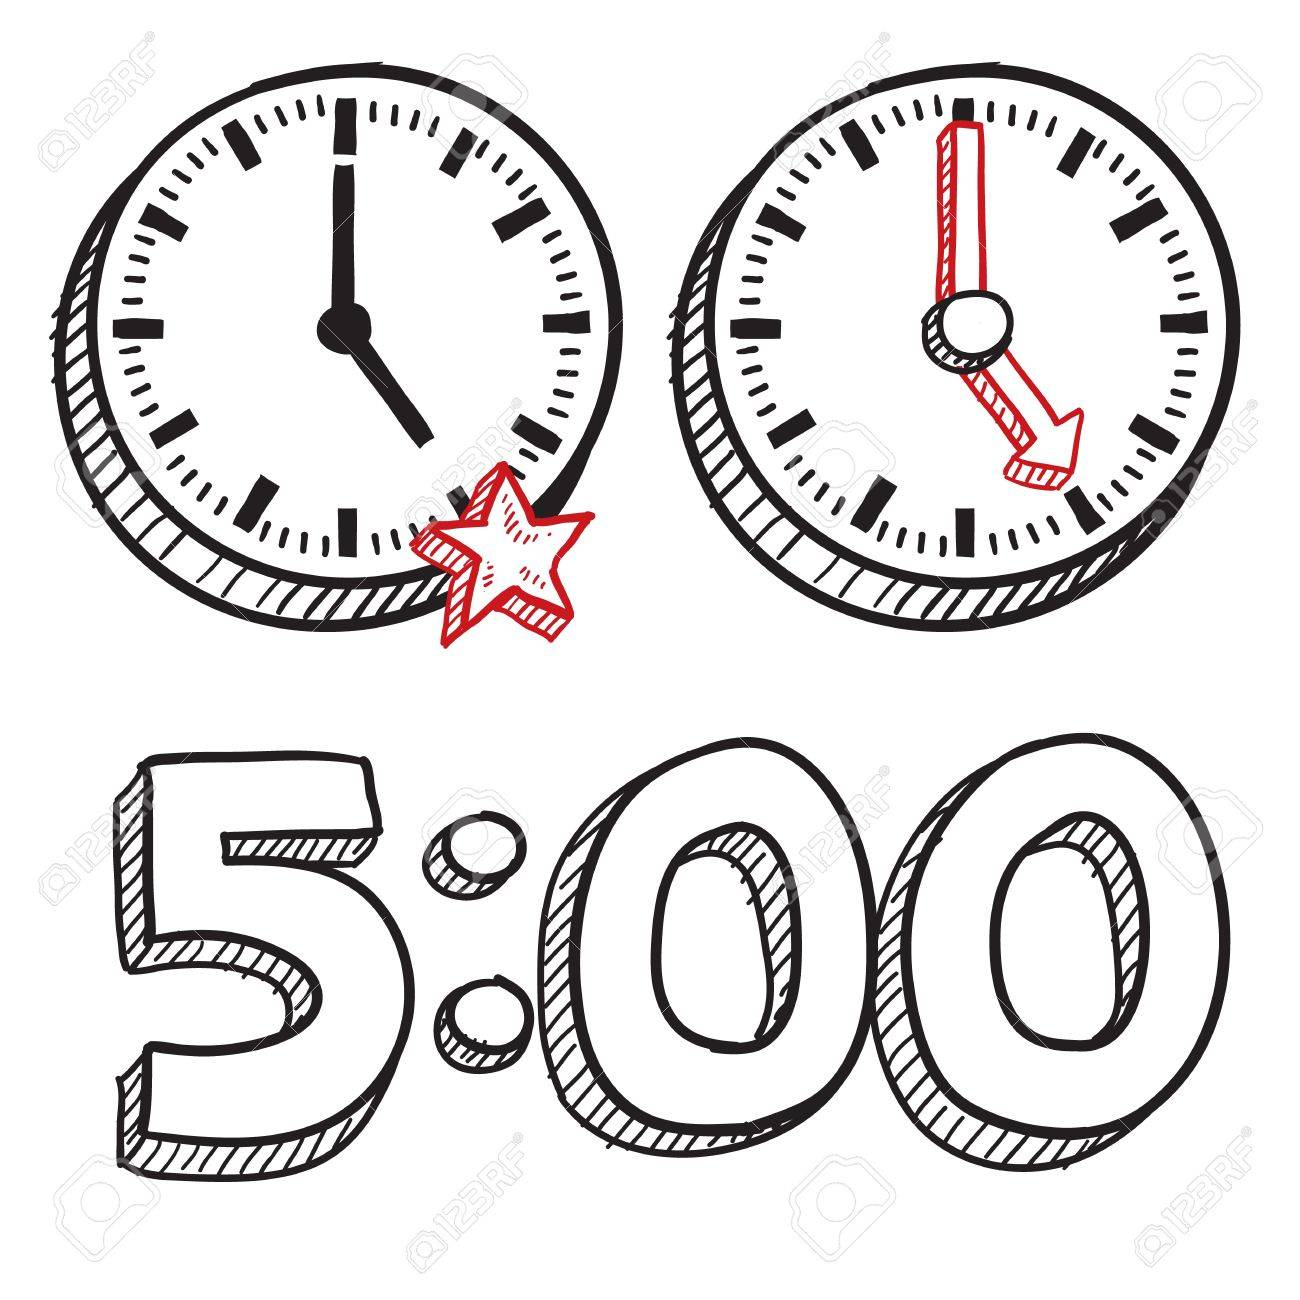 Doodle style 5 00 PM end of work day illustration in vector format  Includes text and clocks Stock Vector - 18476624